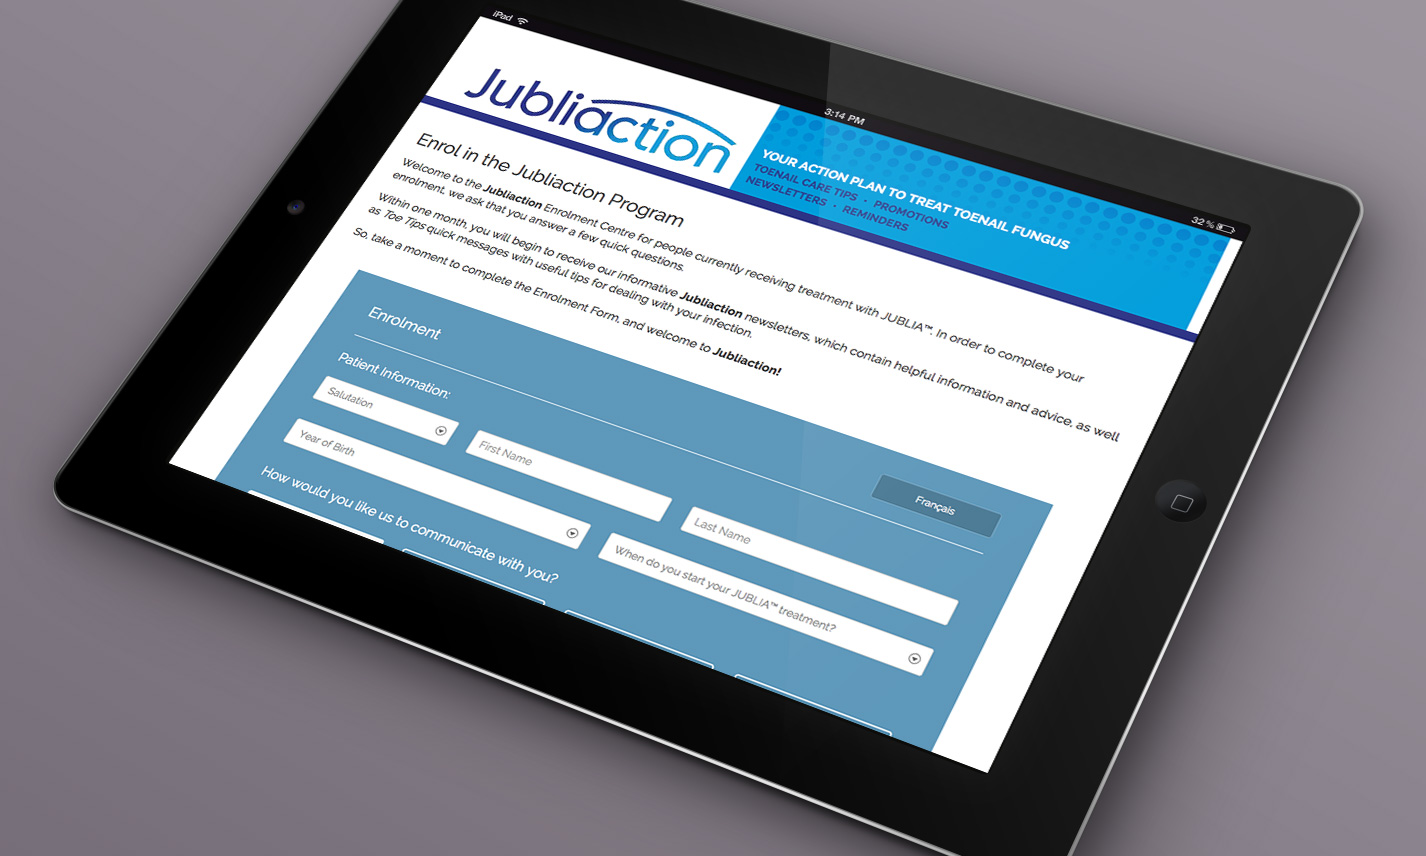 Jubliaction: Turn-key Patient Support Program